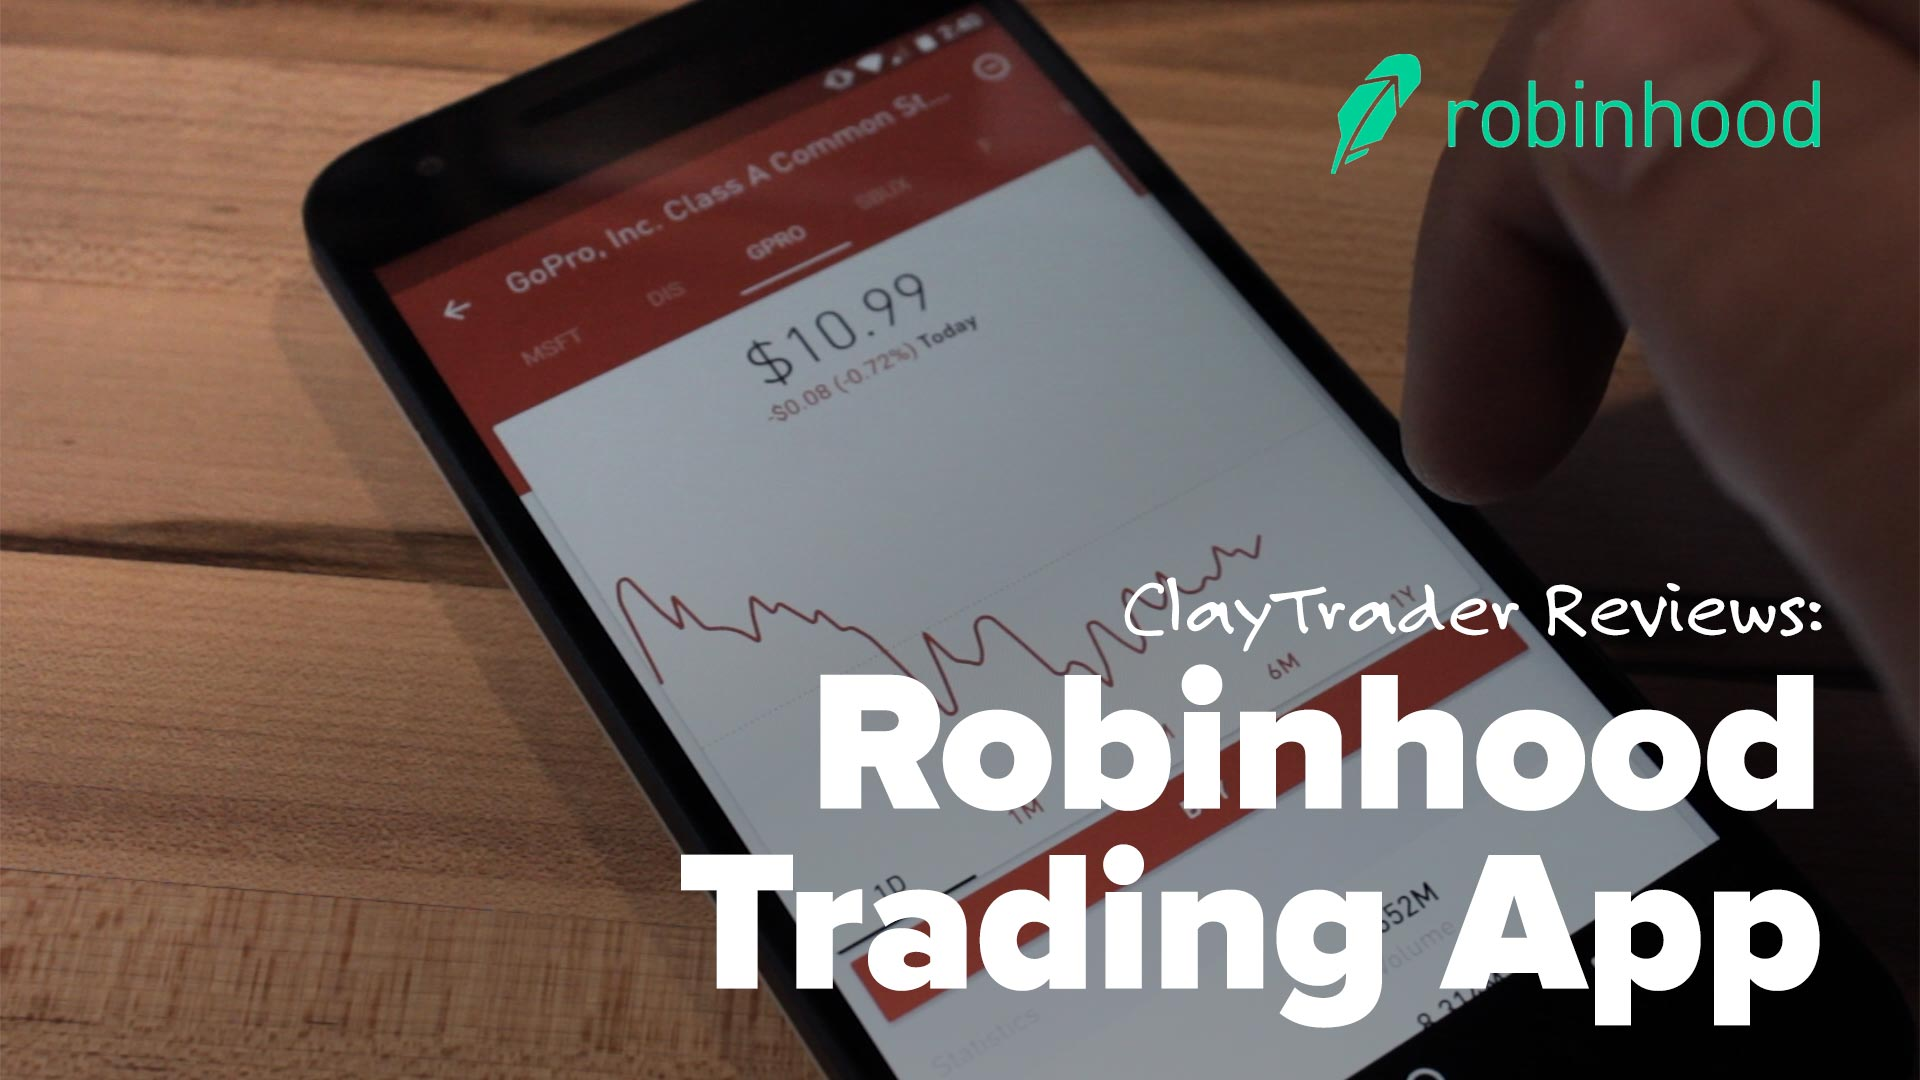 Robinhood Commission-Free Investing Inches